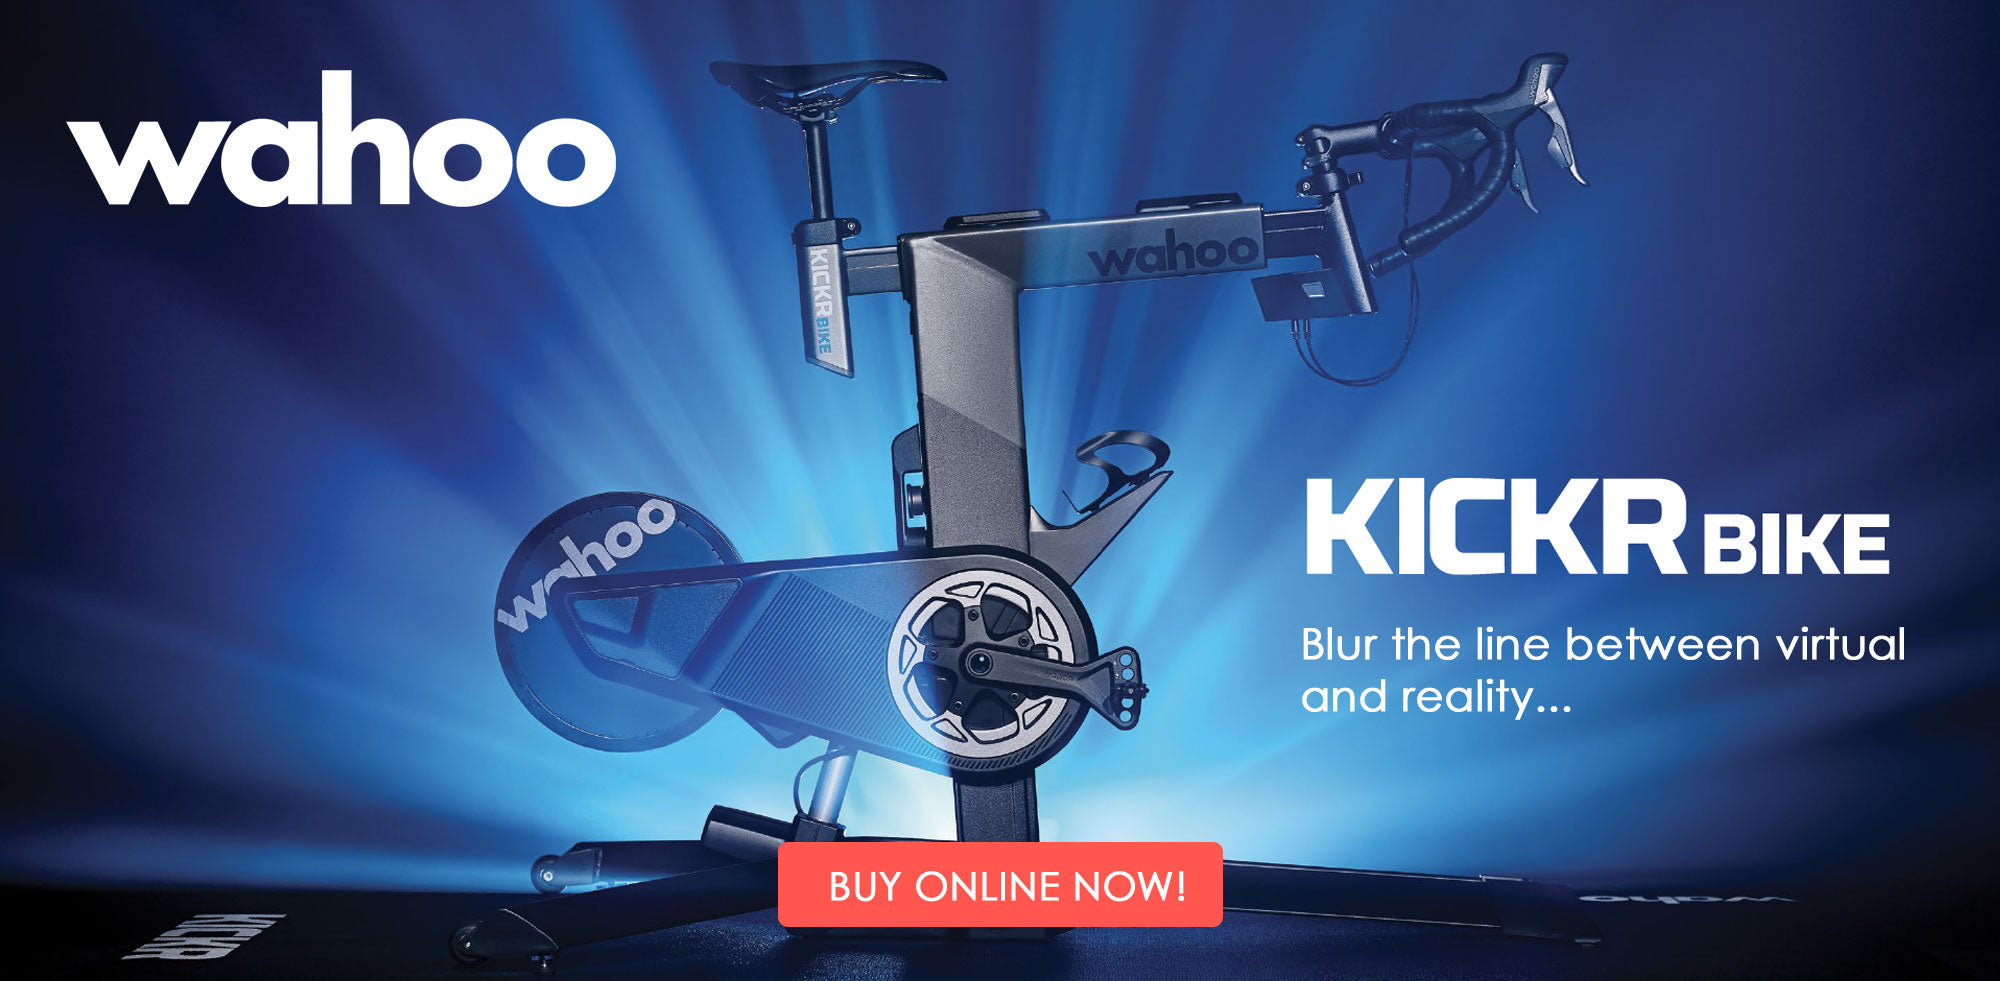 Wahoo Kickr Bike - Pre-order now